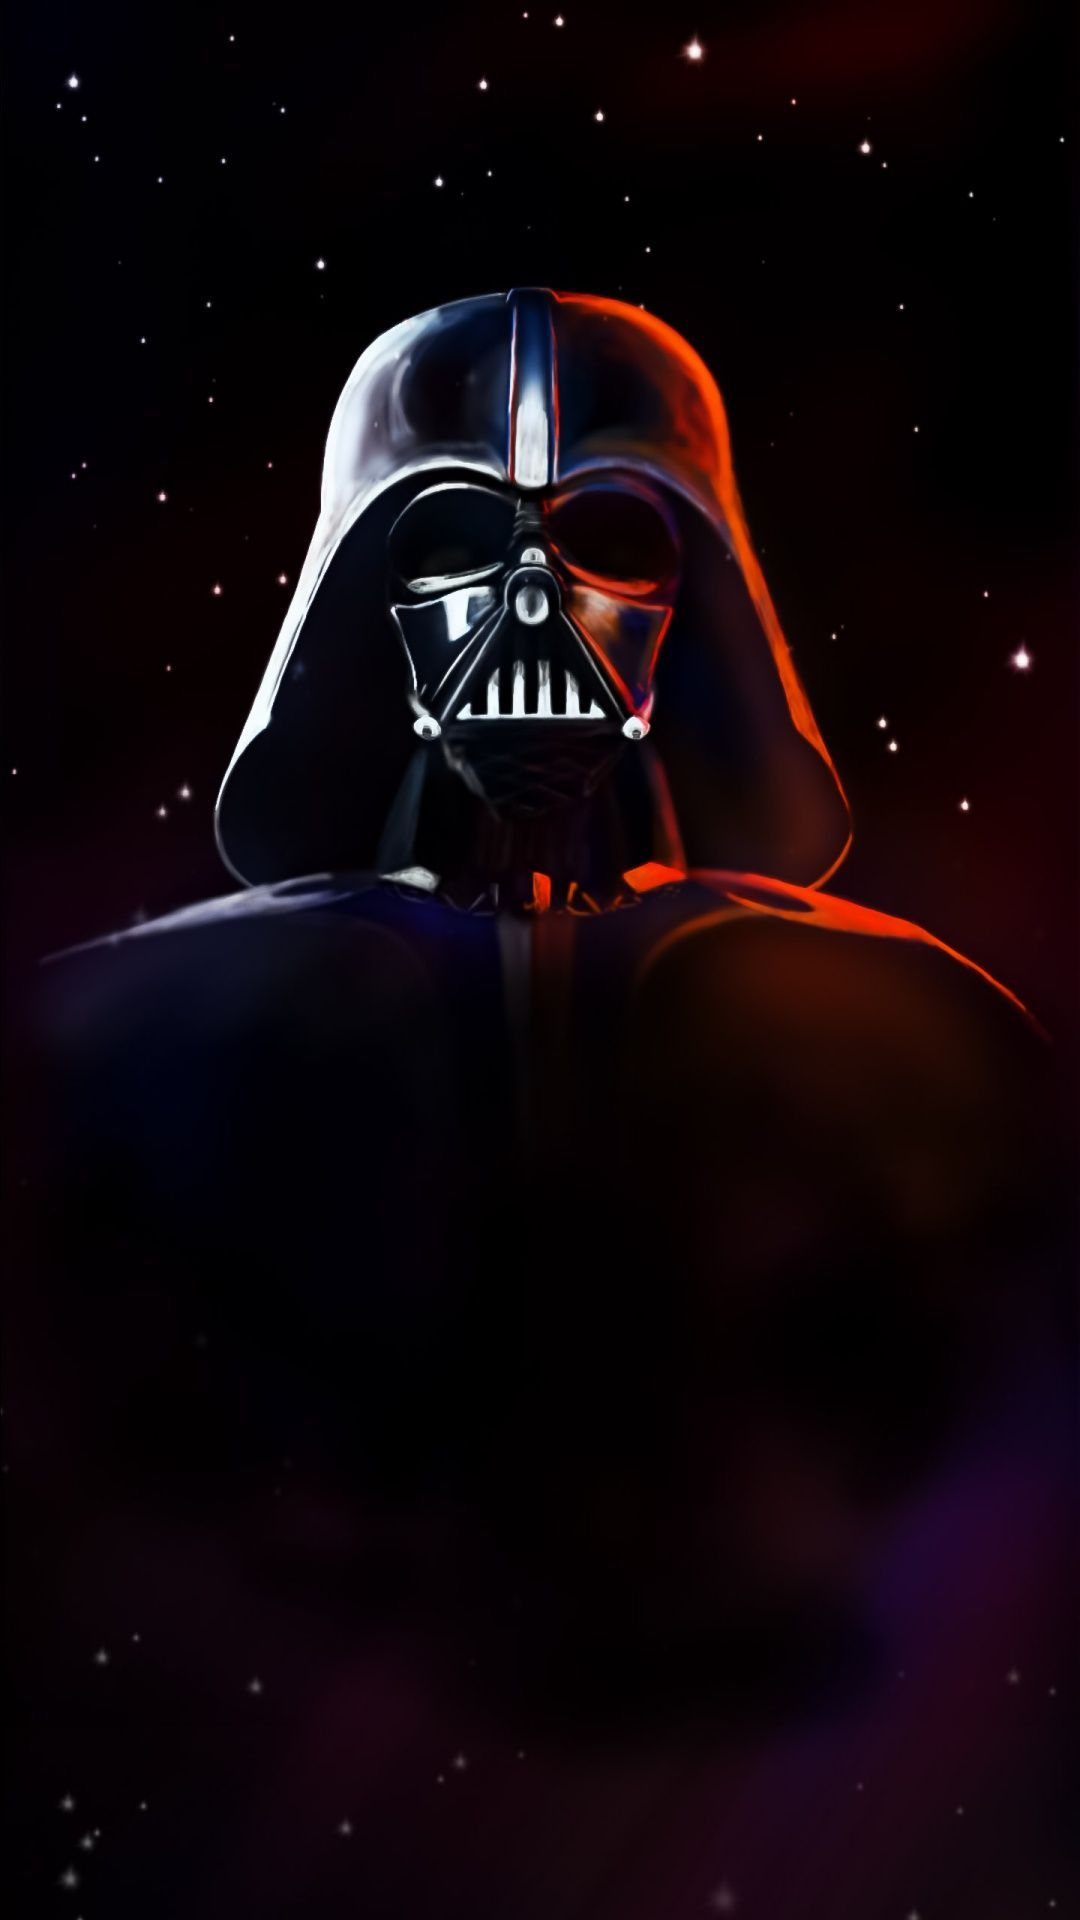 Darth Vader Rogue One Android Background Cinematics Wallpapers